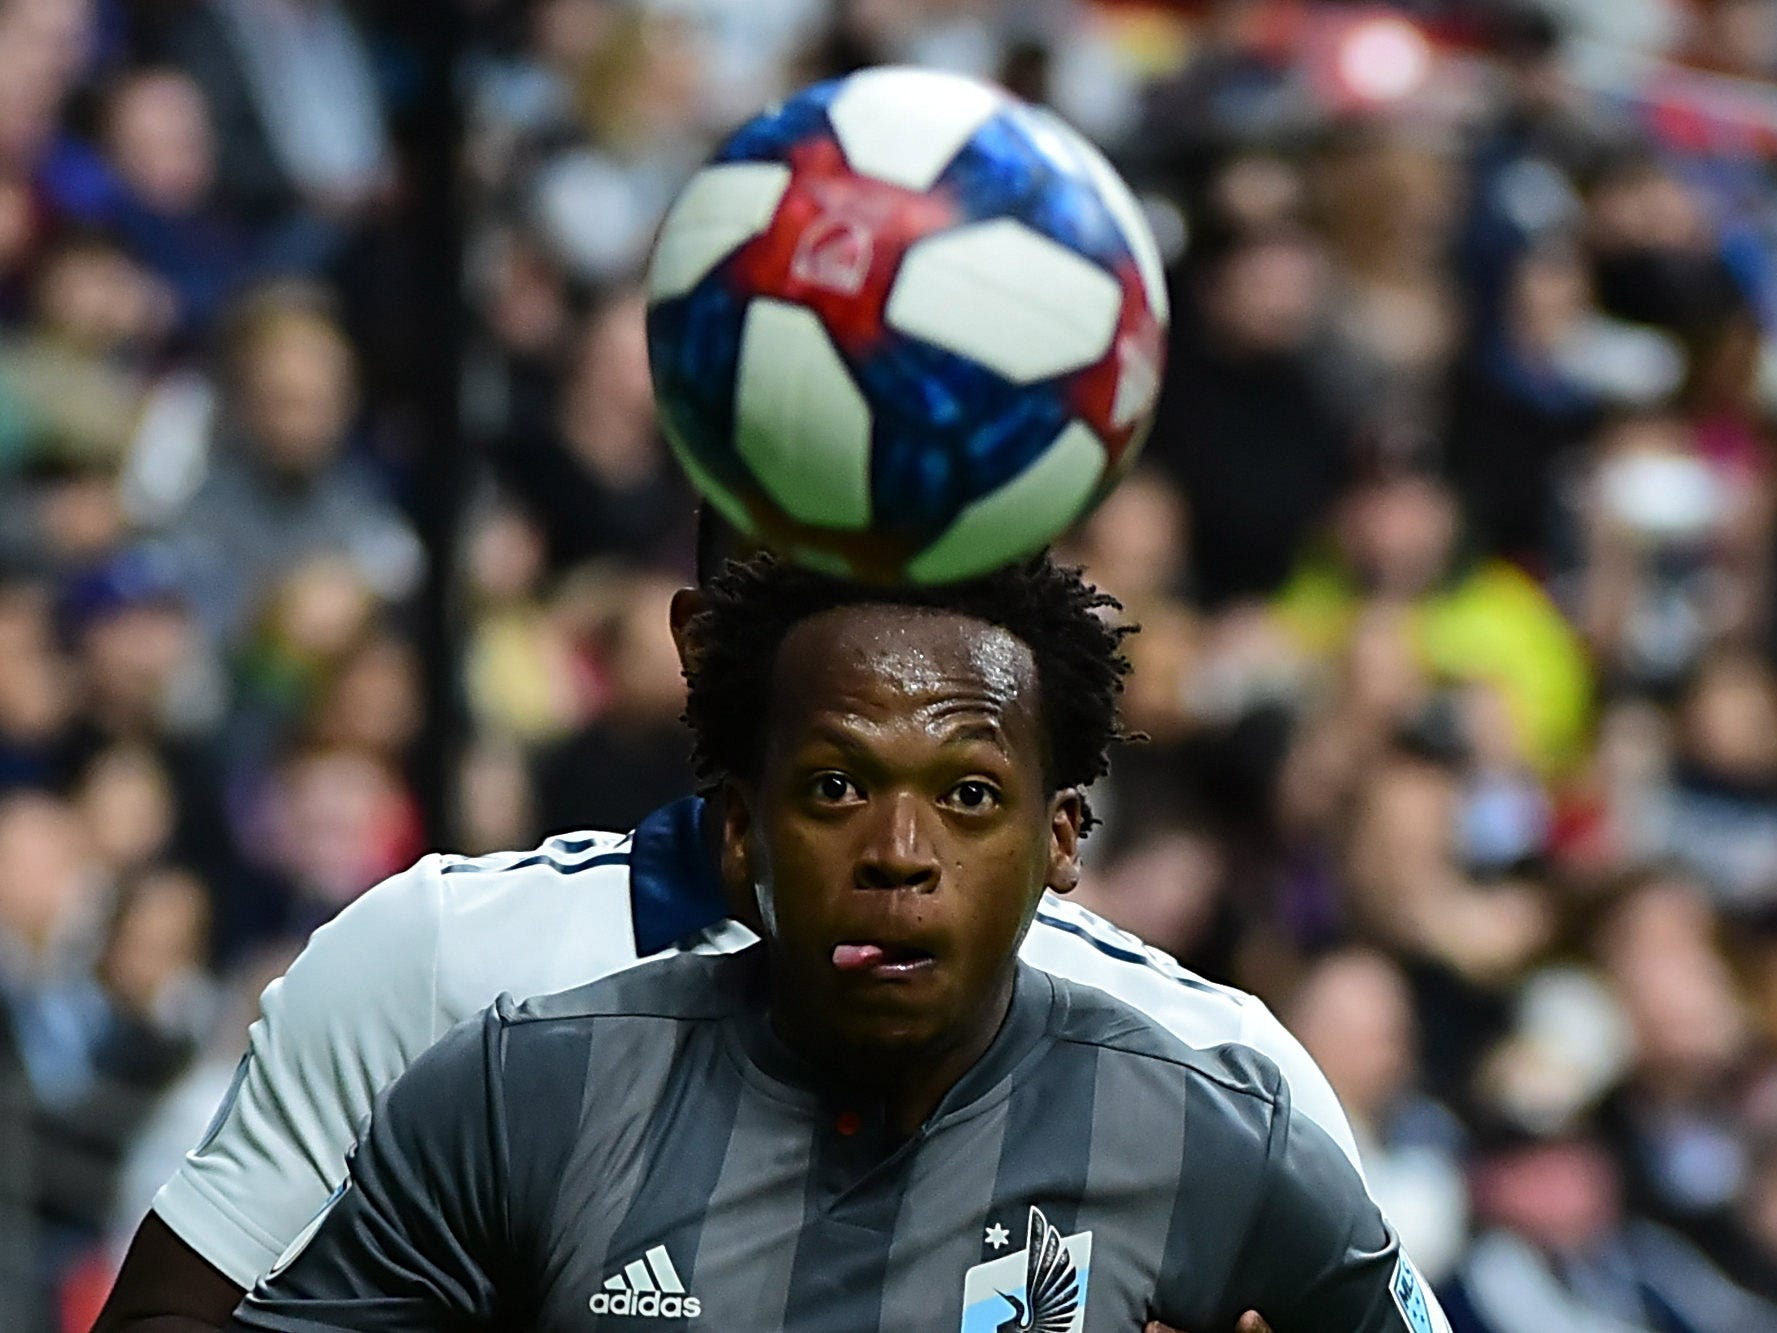 Minnesota United midfielder Romario Ibarra watches the ball during the game against the Vancouver Whitecaps at BC Place. Minnesota won the game, 3-2.